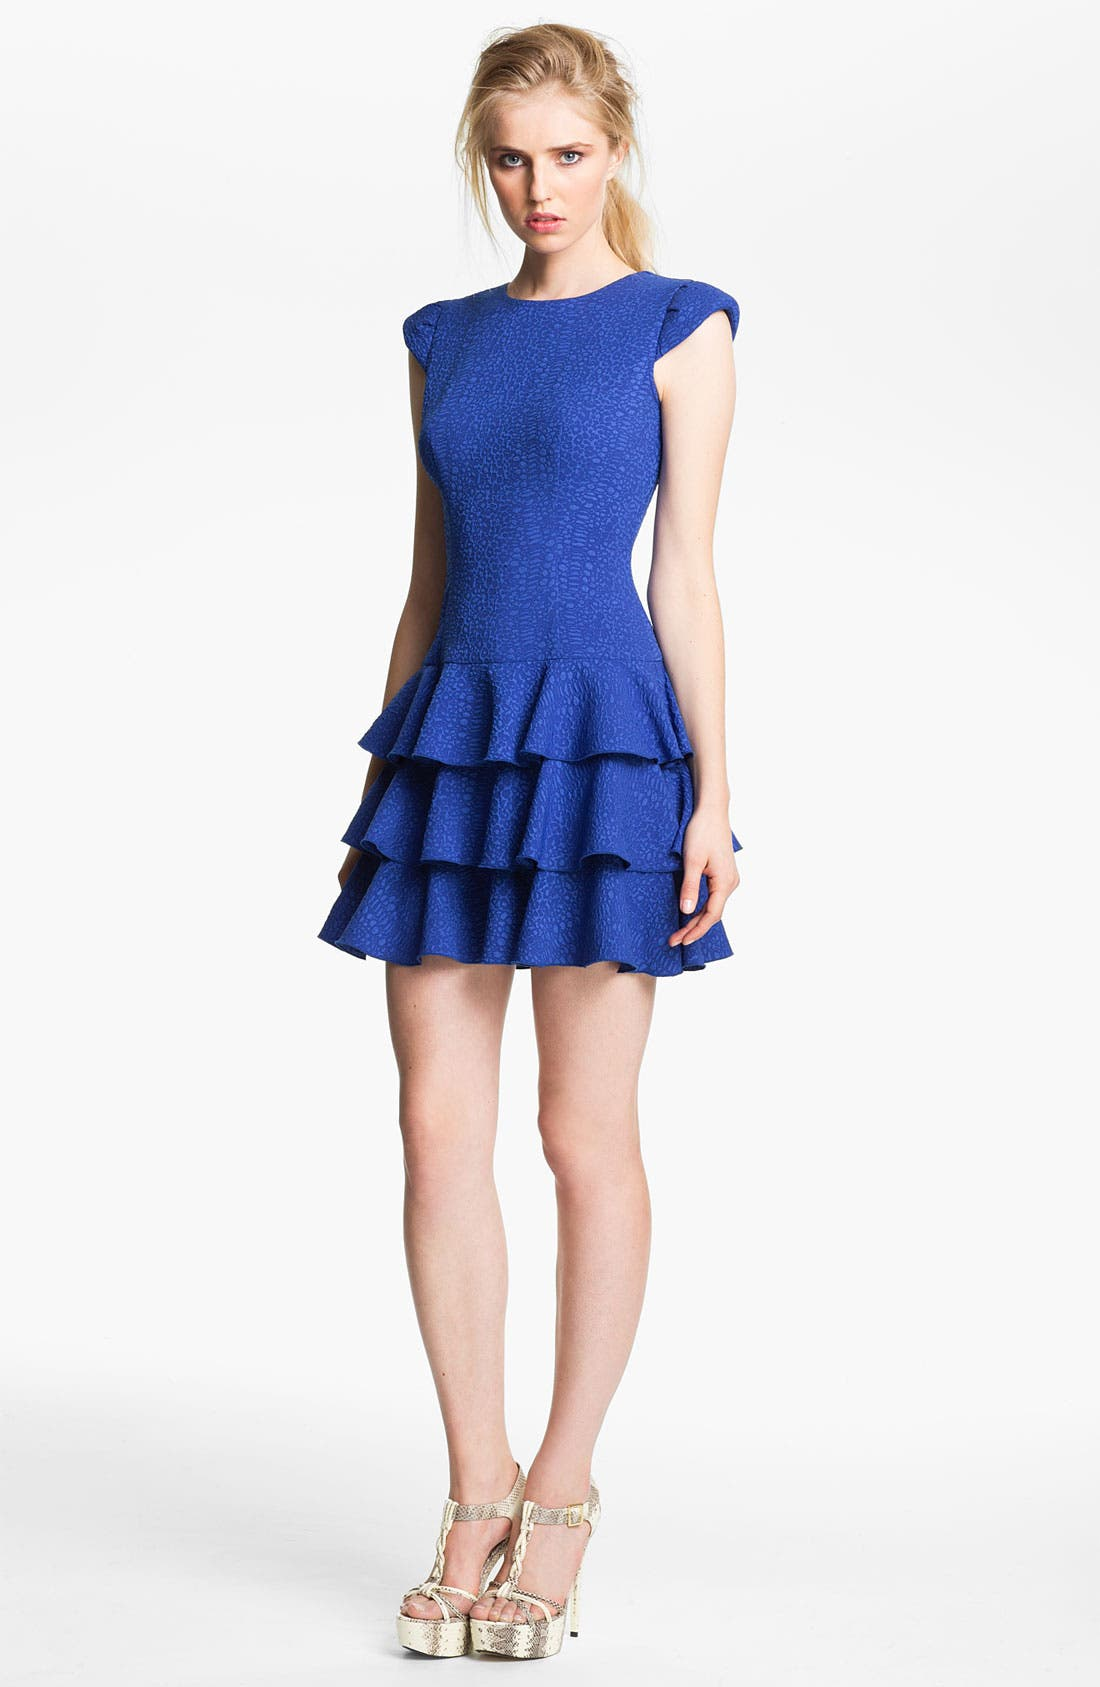 Alternate Image 1 Selected - Rachel Zoe Cutout Back Dress